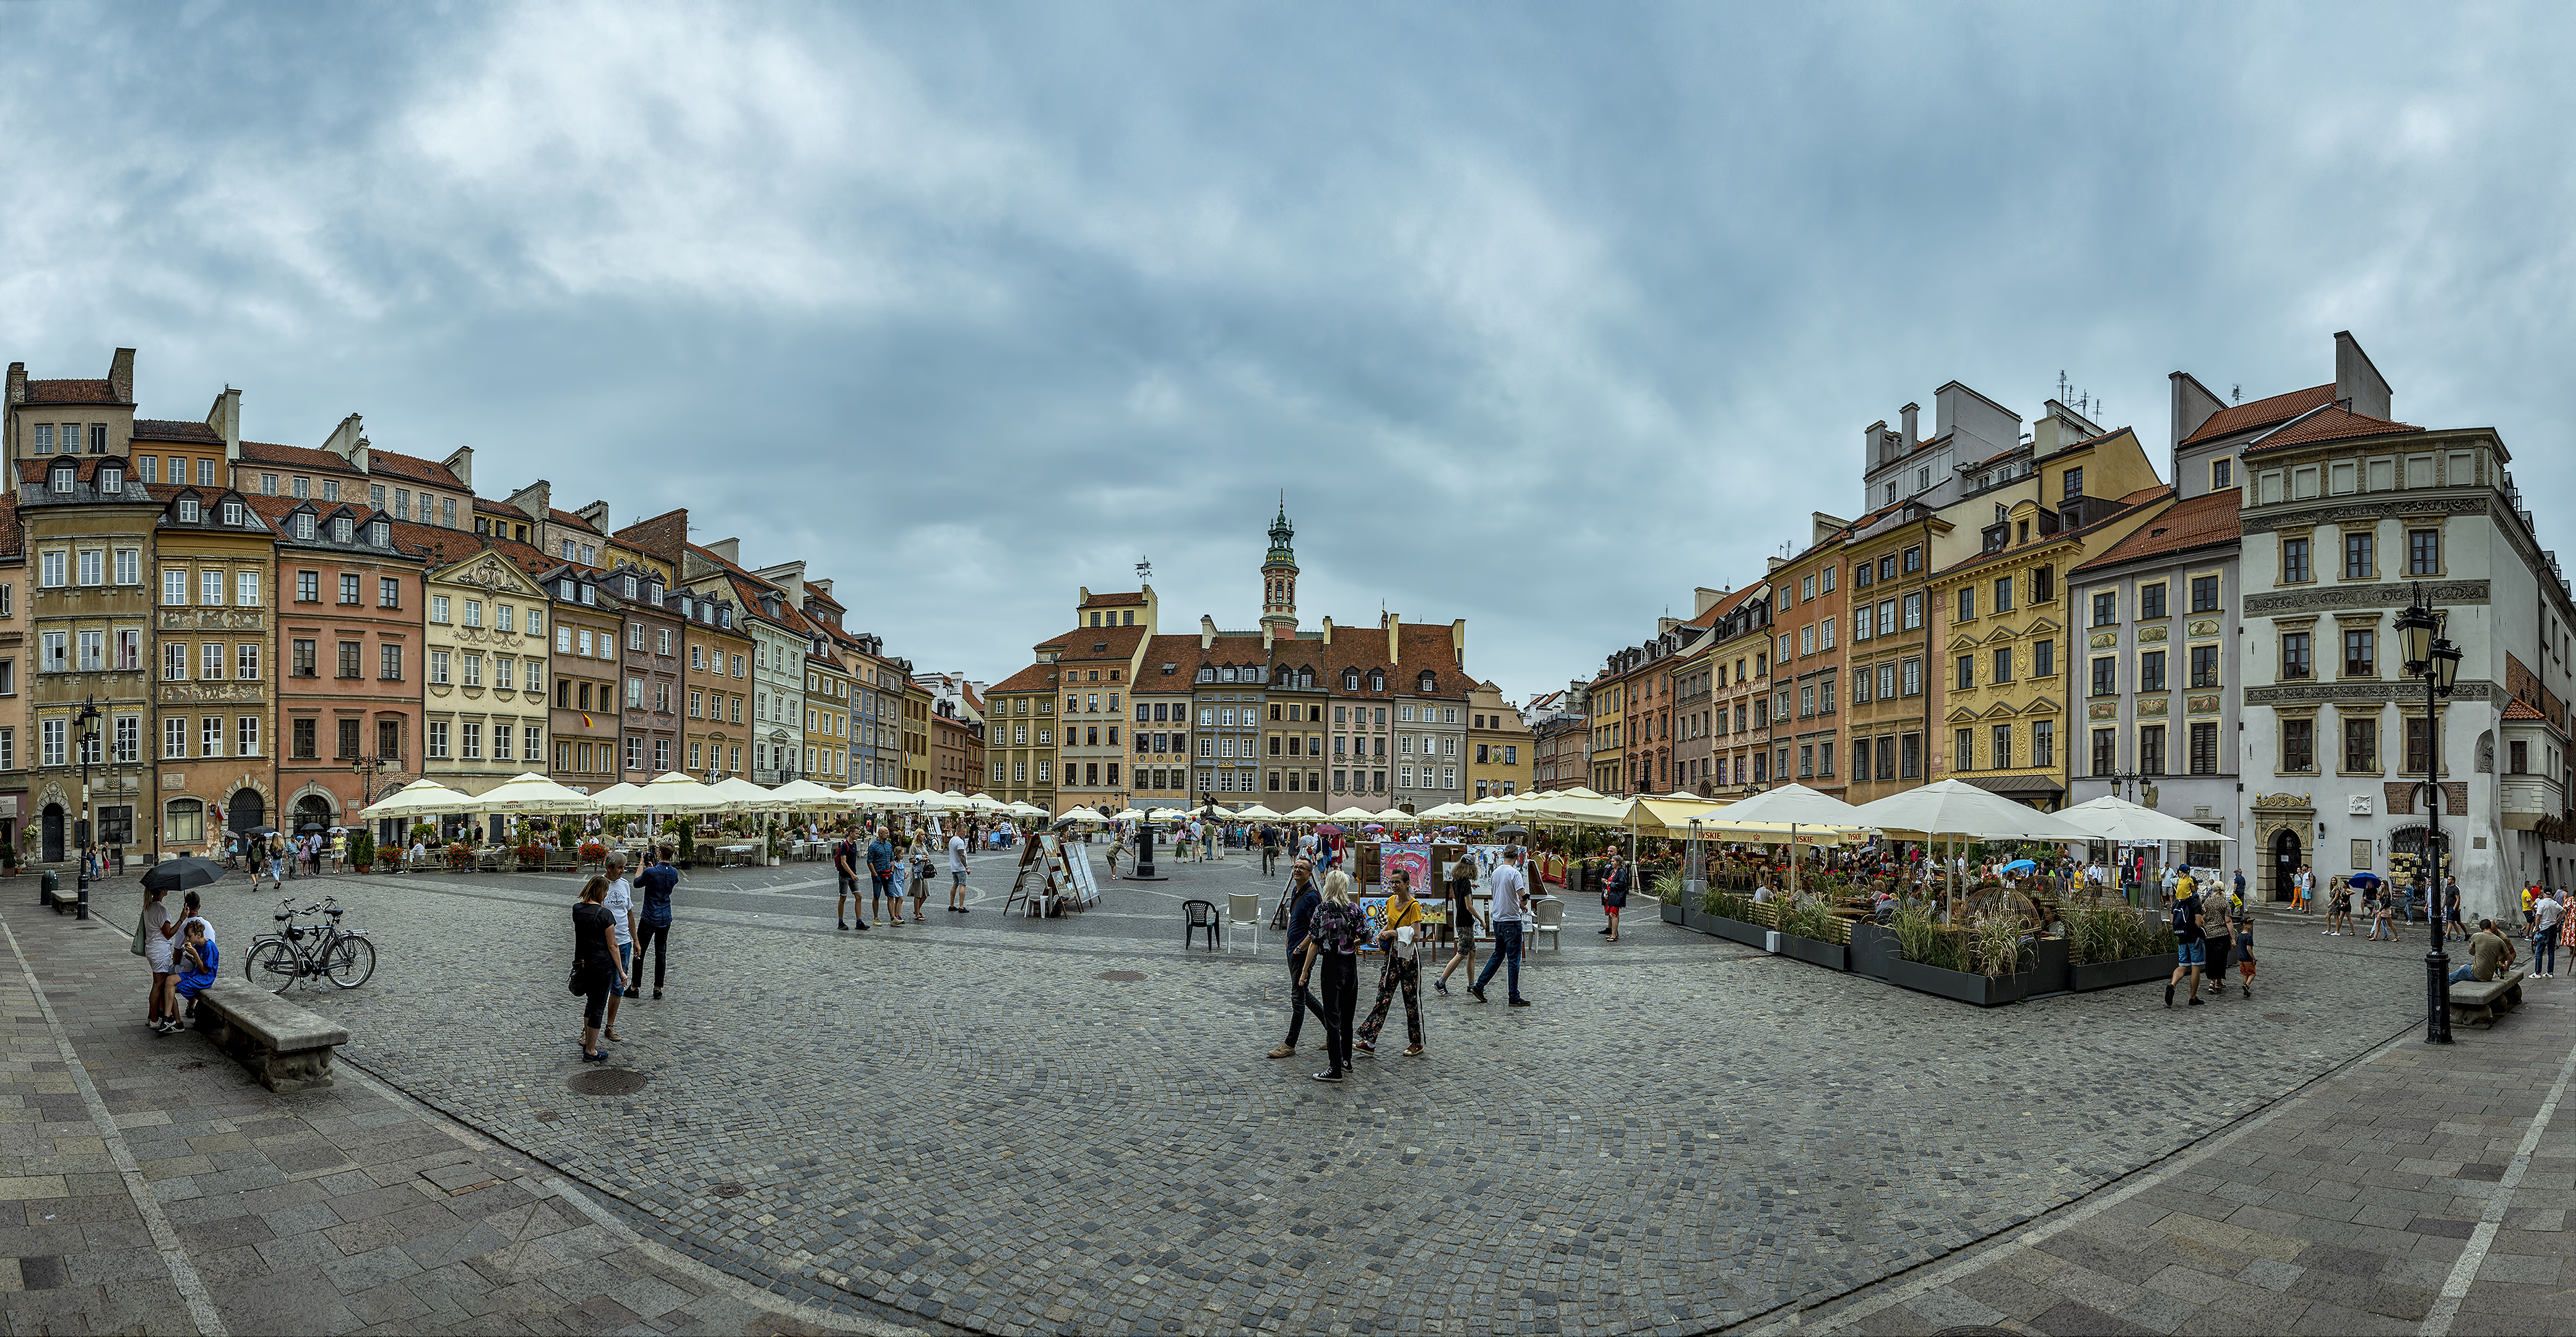 11 photo photomerge warsaw old town square